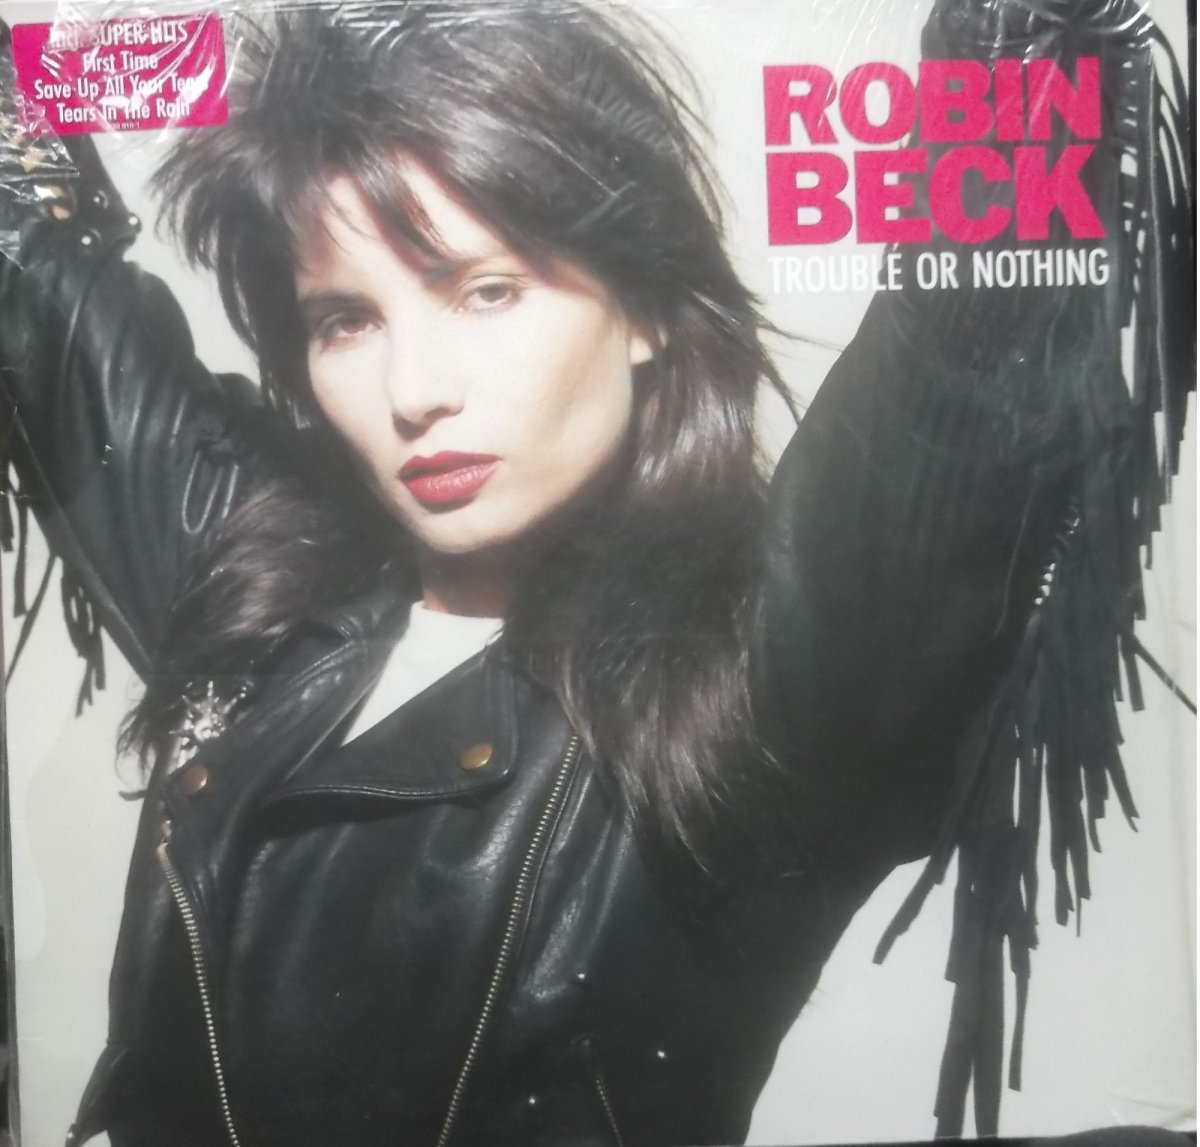 Robin Beck – Trouble Or Nothing